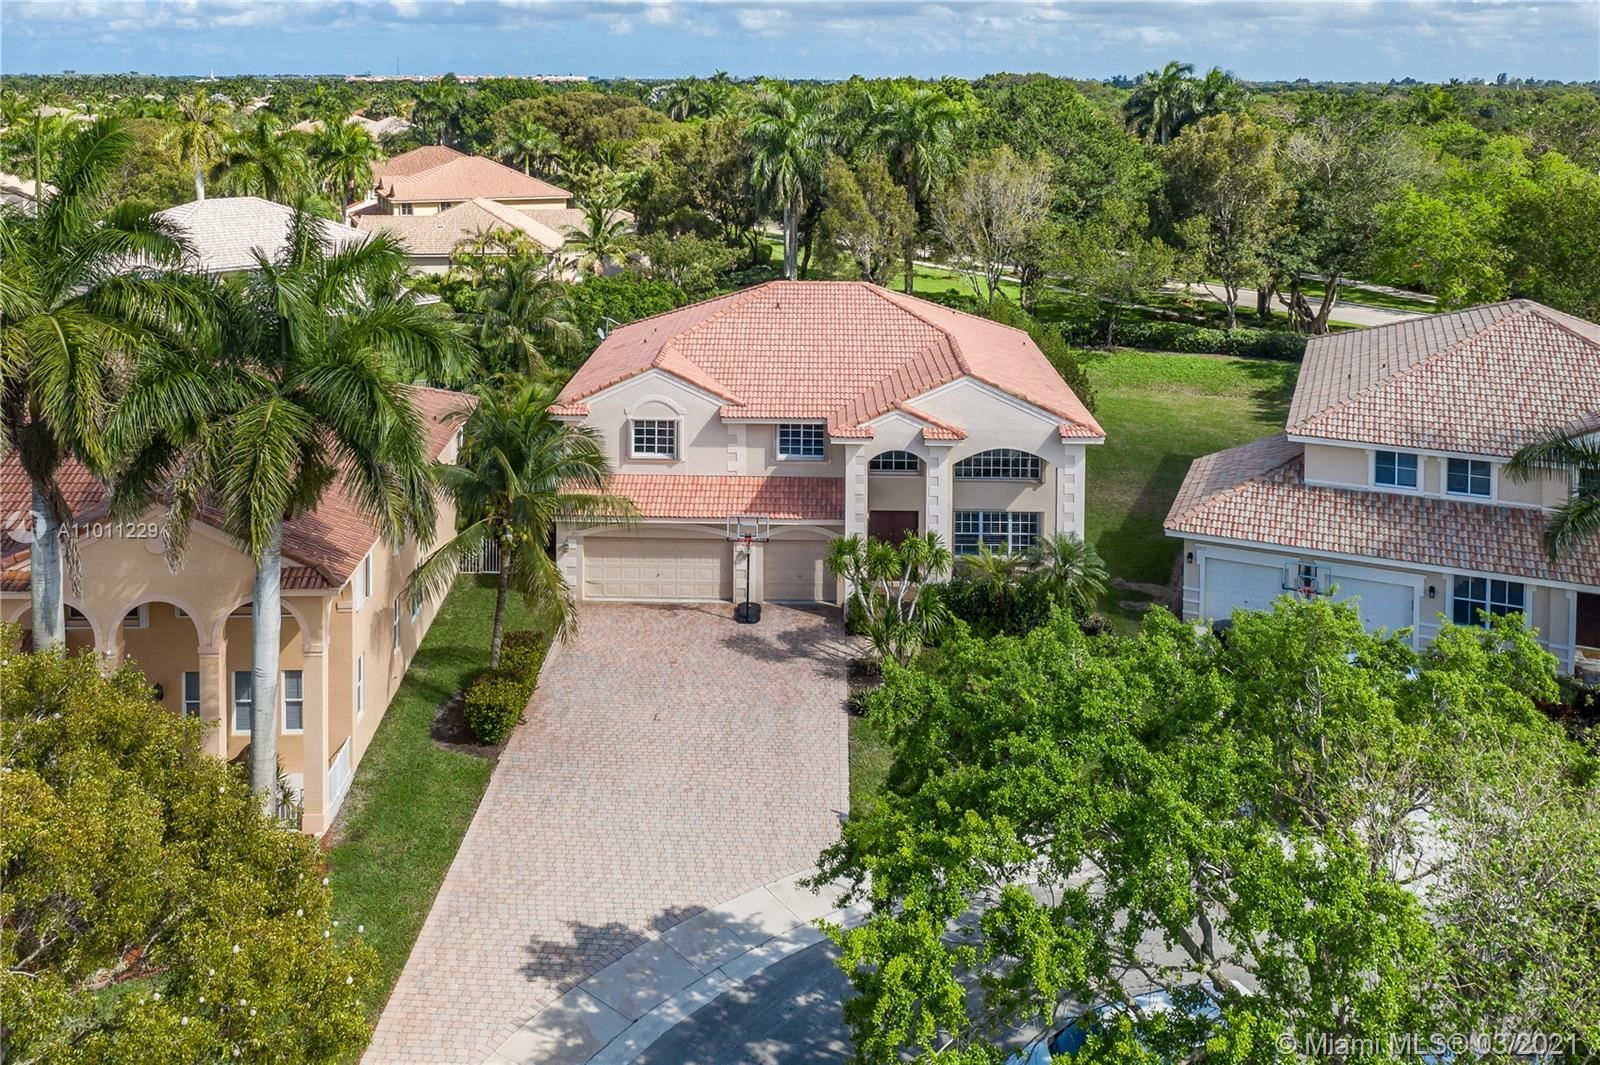 3817 Heron Ridge Ln, Weston, FL 33331 - #: A11011229